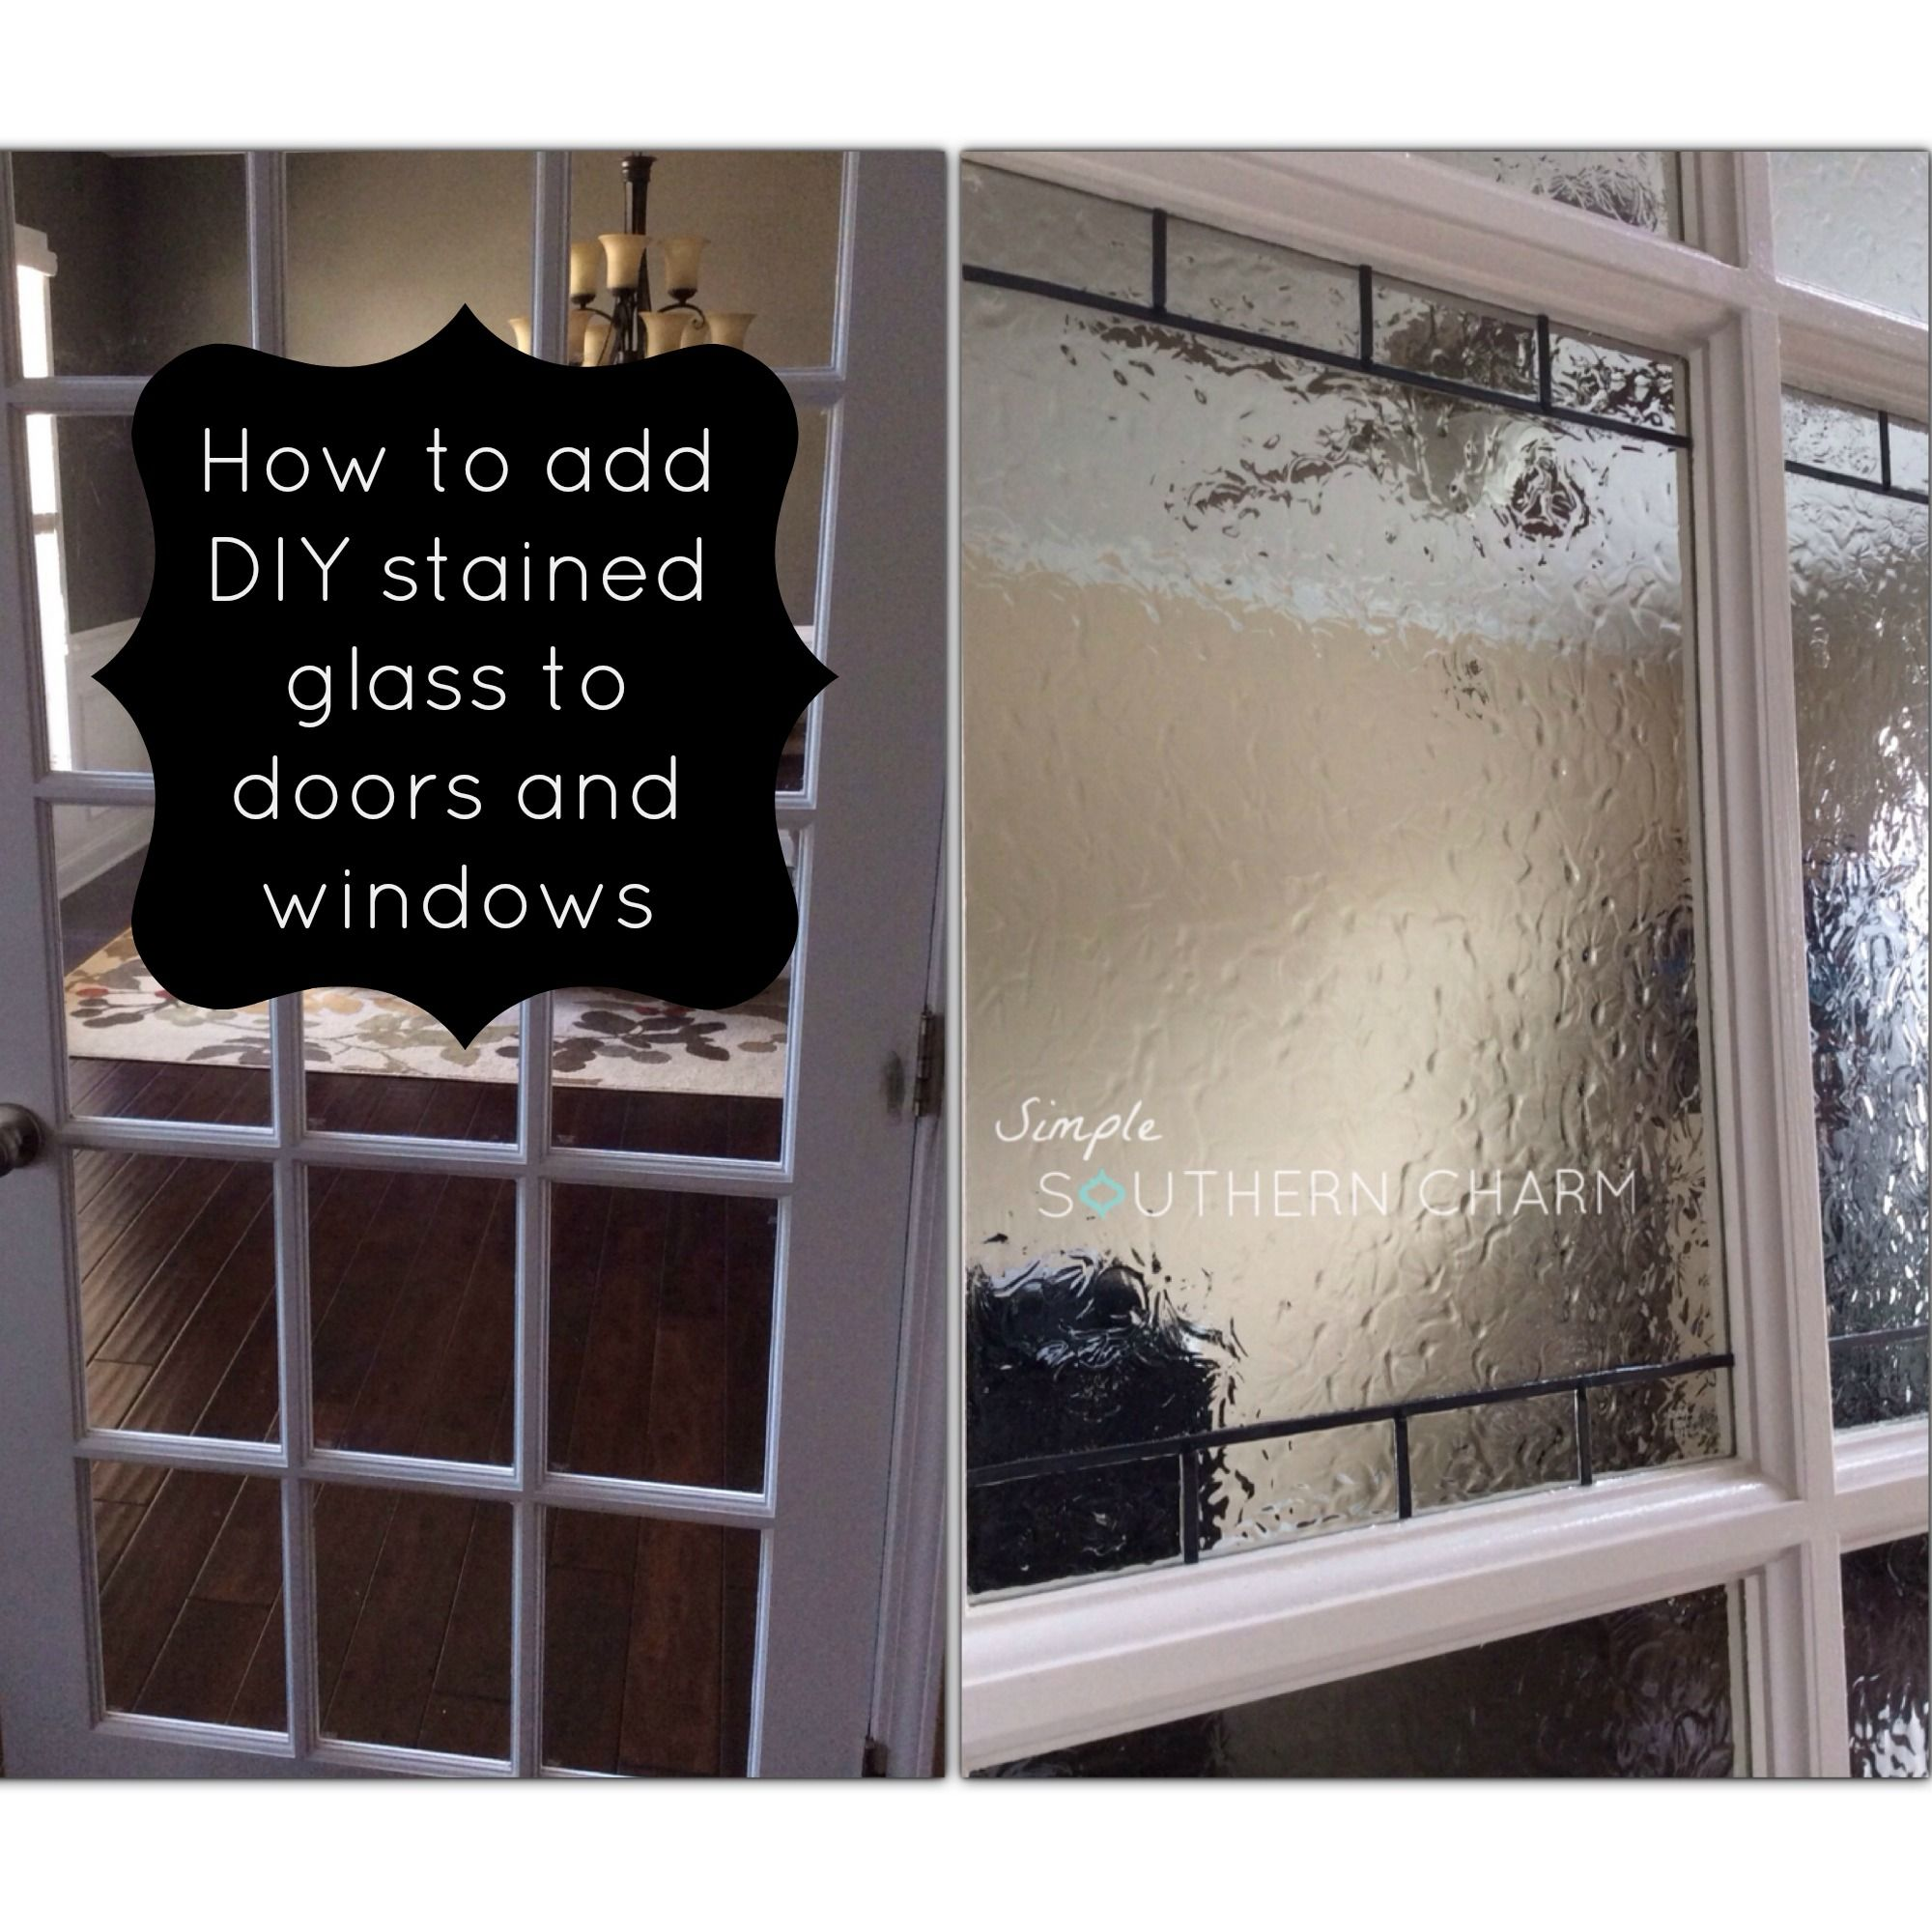 Learn how to get a stained glass look! Check out these easy step by step instructions on how to create this faux DIY stained glass technique!